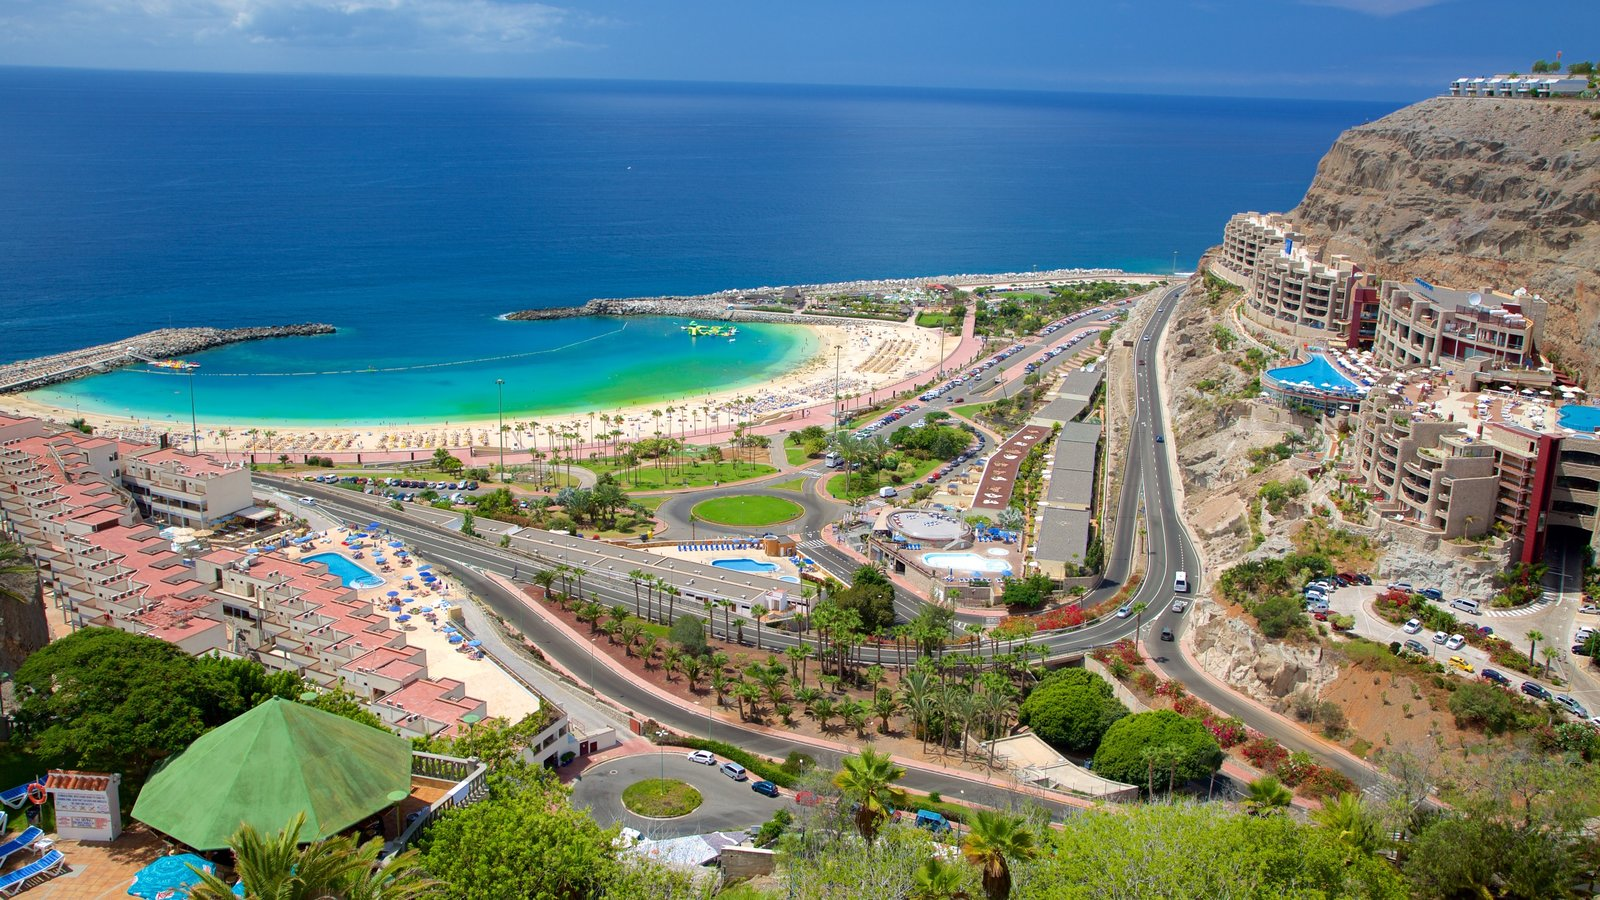 Largest City In The Canary Islands